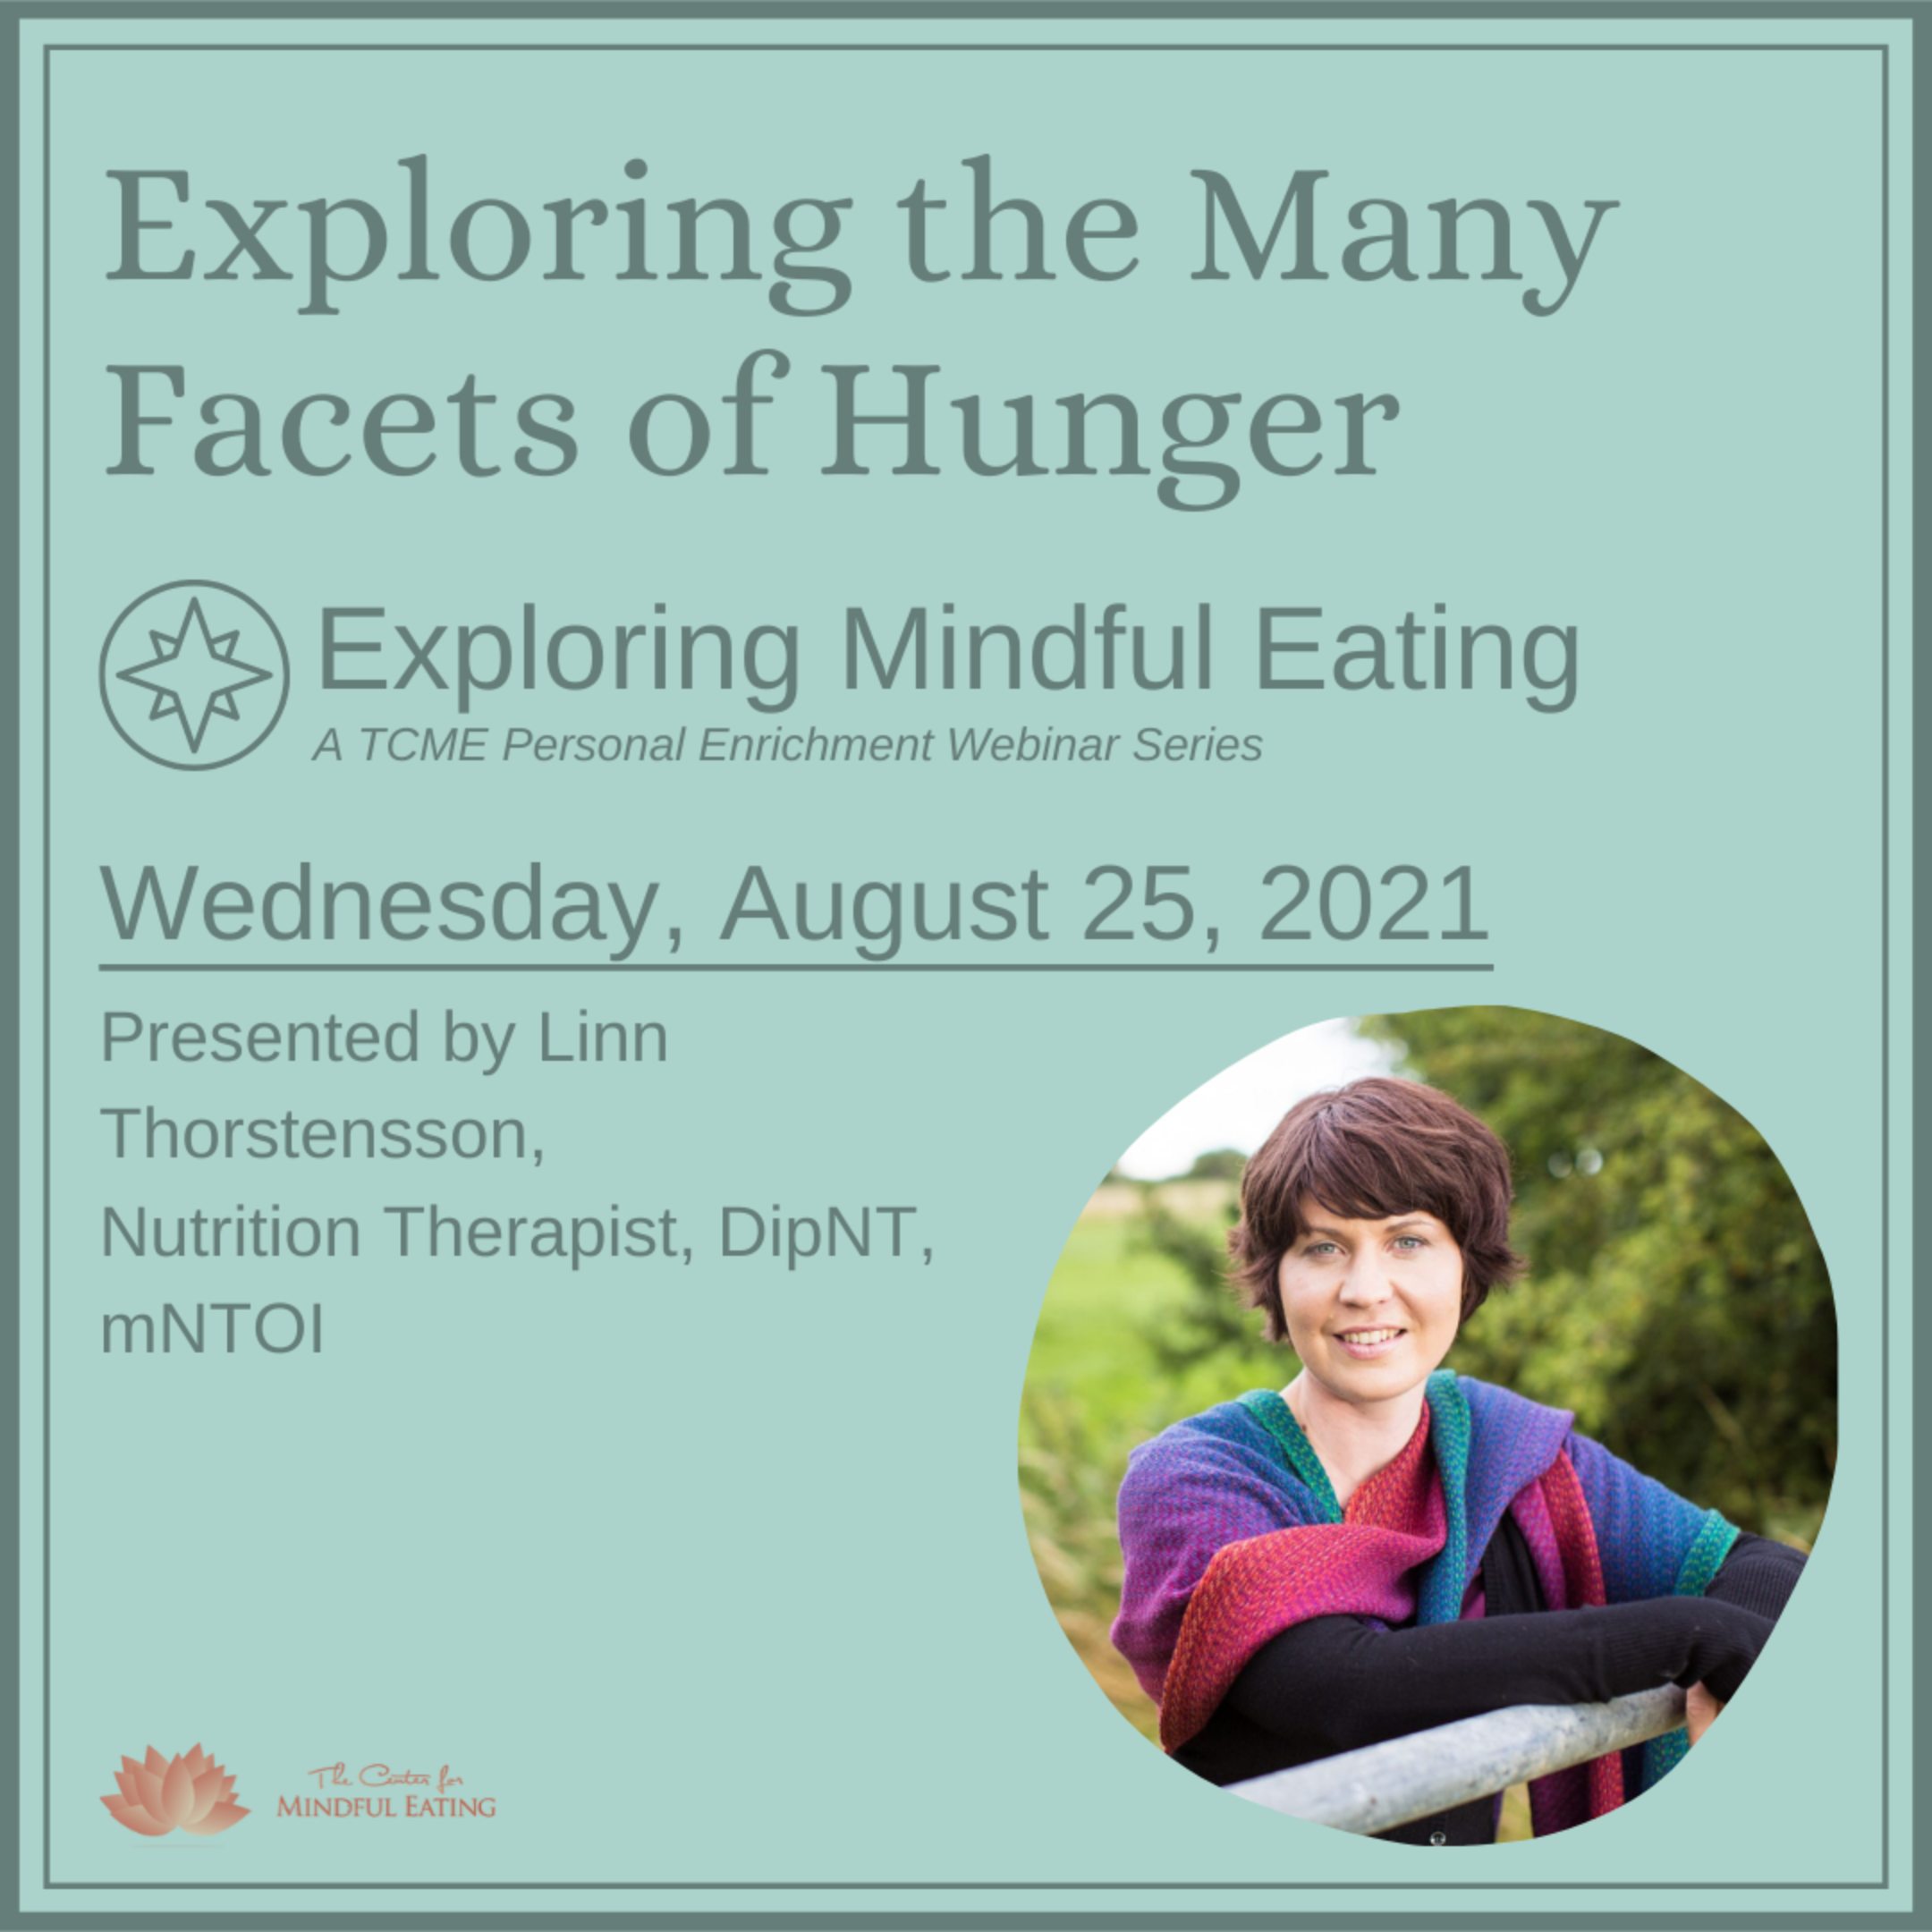 Exploring the Many Facets of Hunger